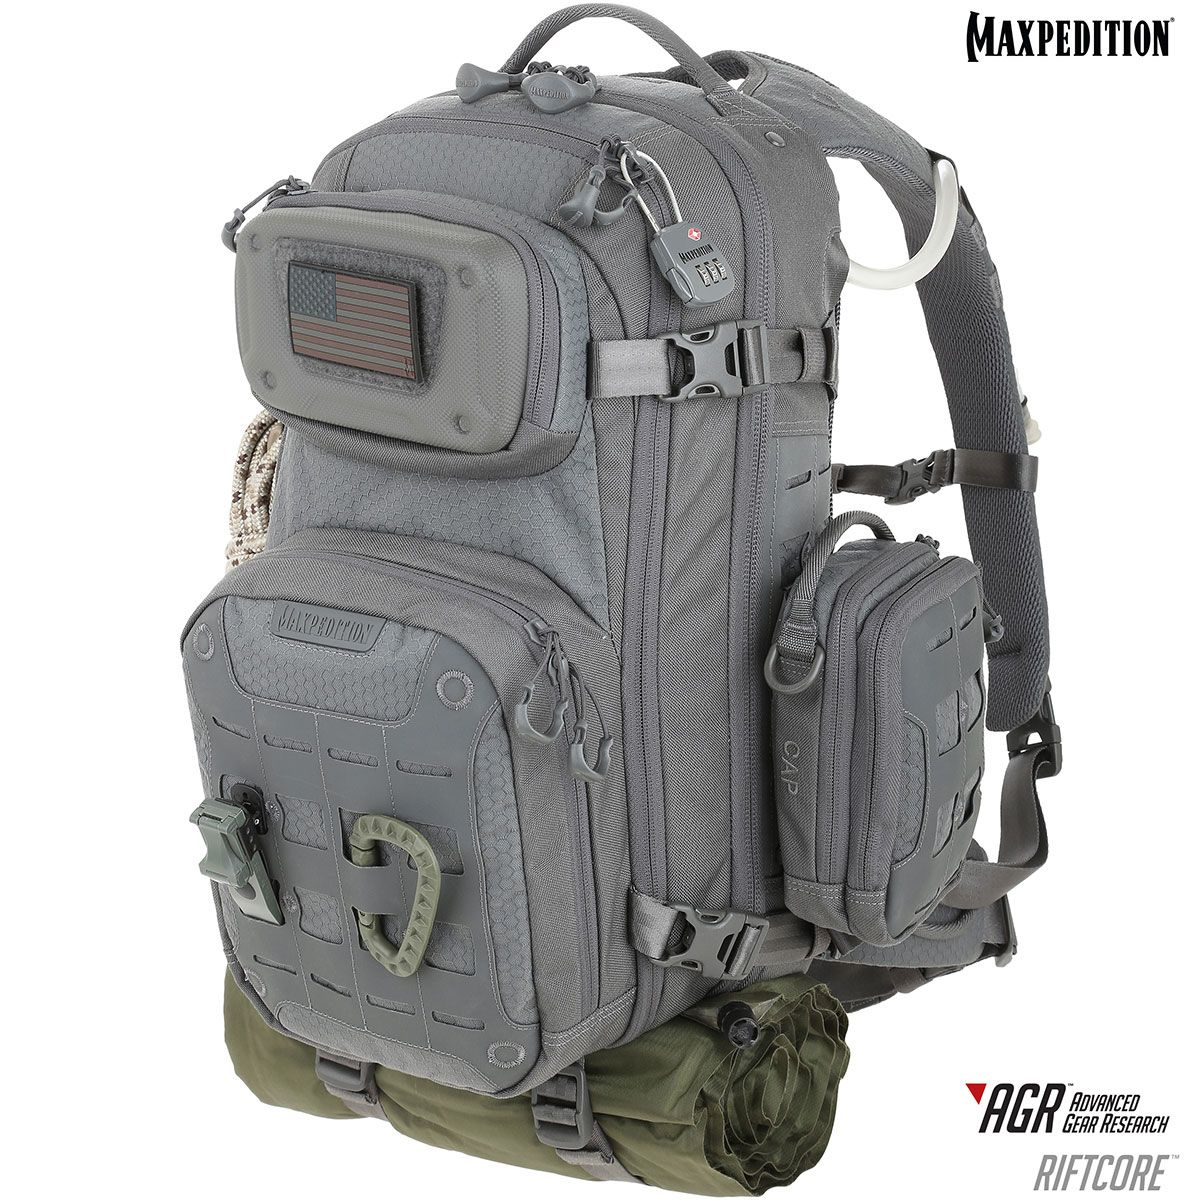 Maxpedition Unisex Riftcore Backpack Rfcgry